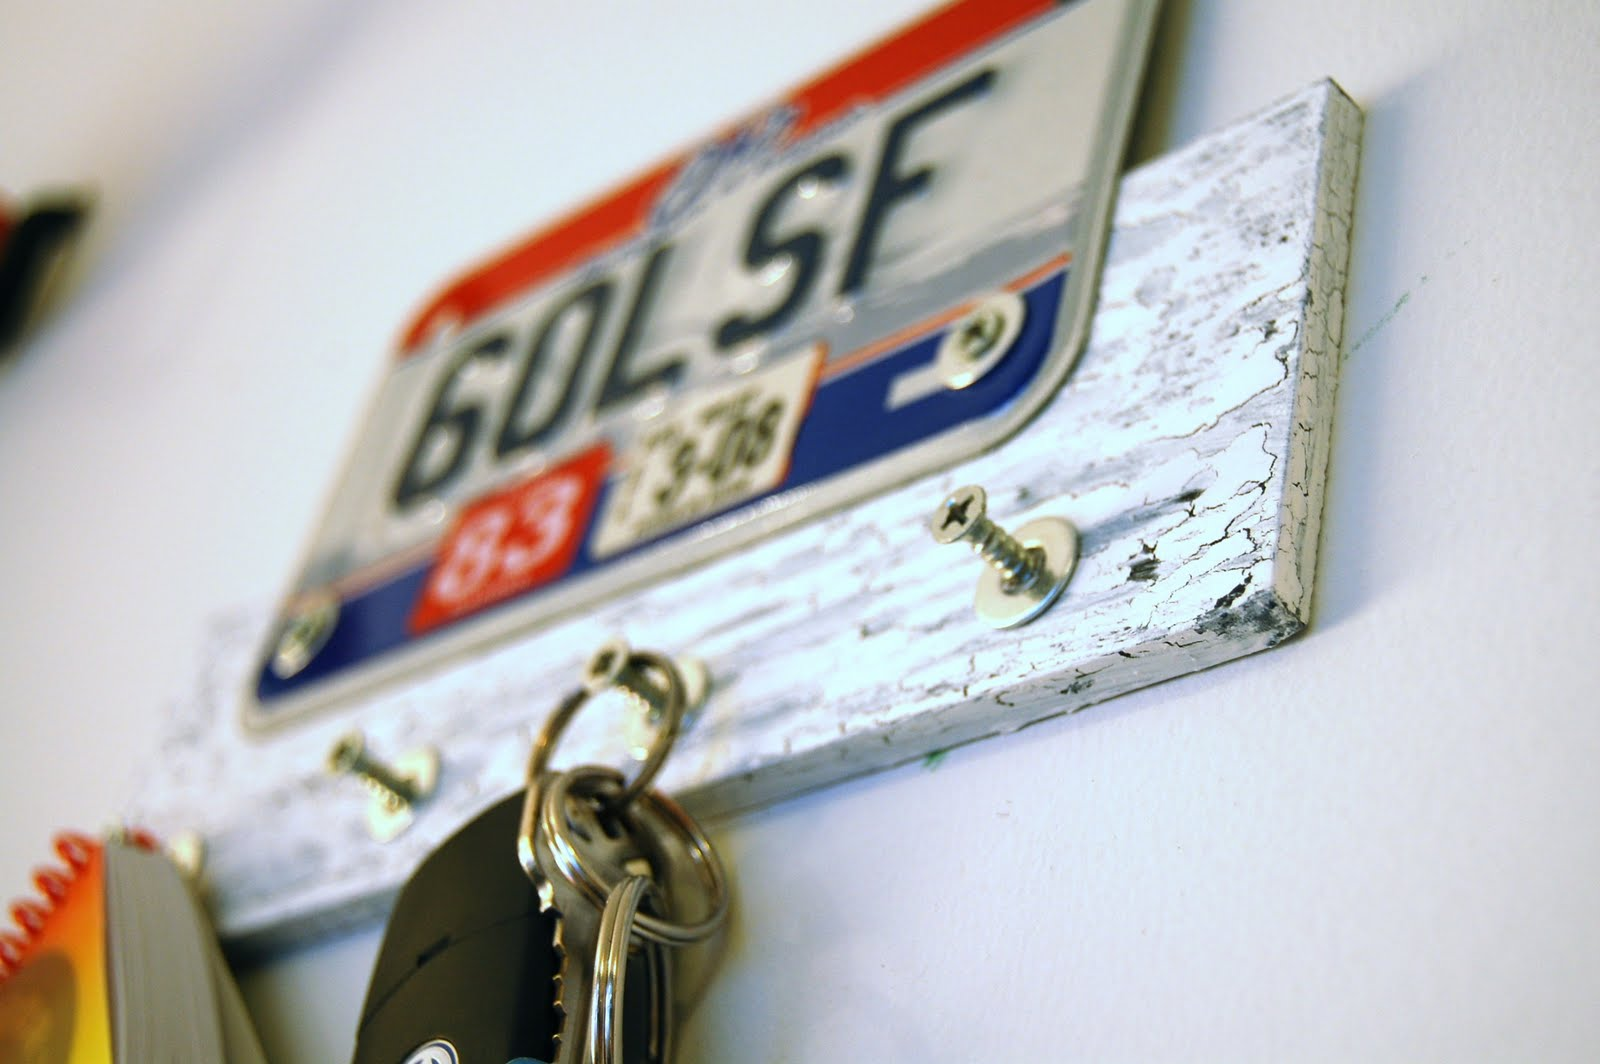 License plate key rack